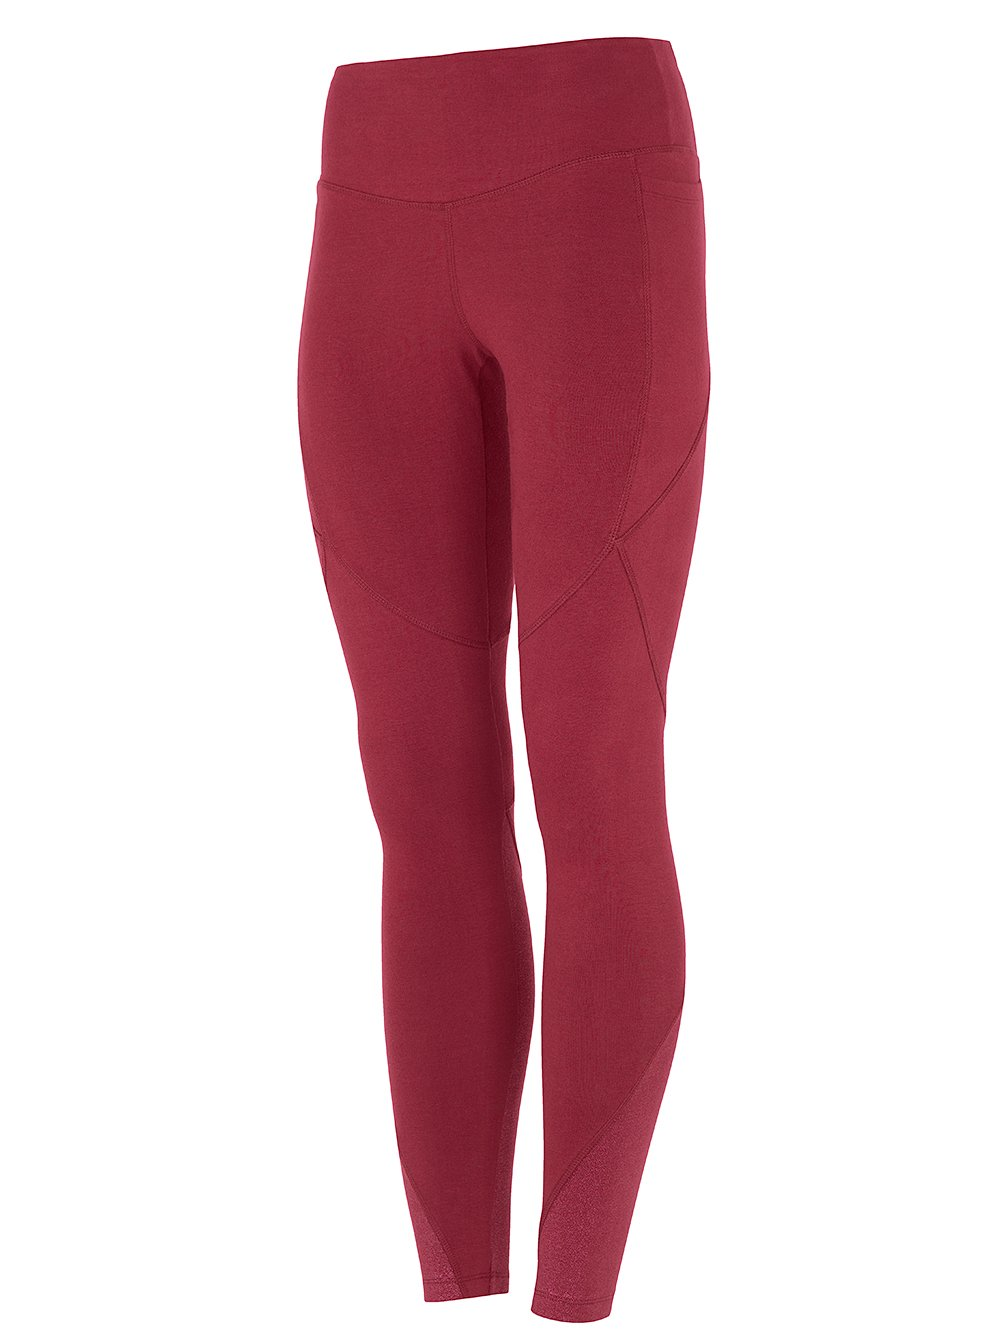 High Waist Glamour Legging Kir Royal